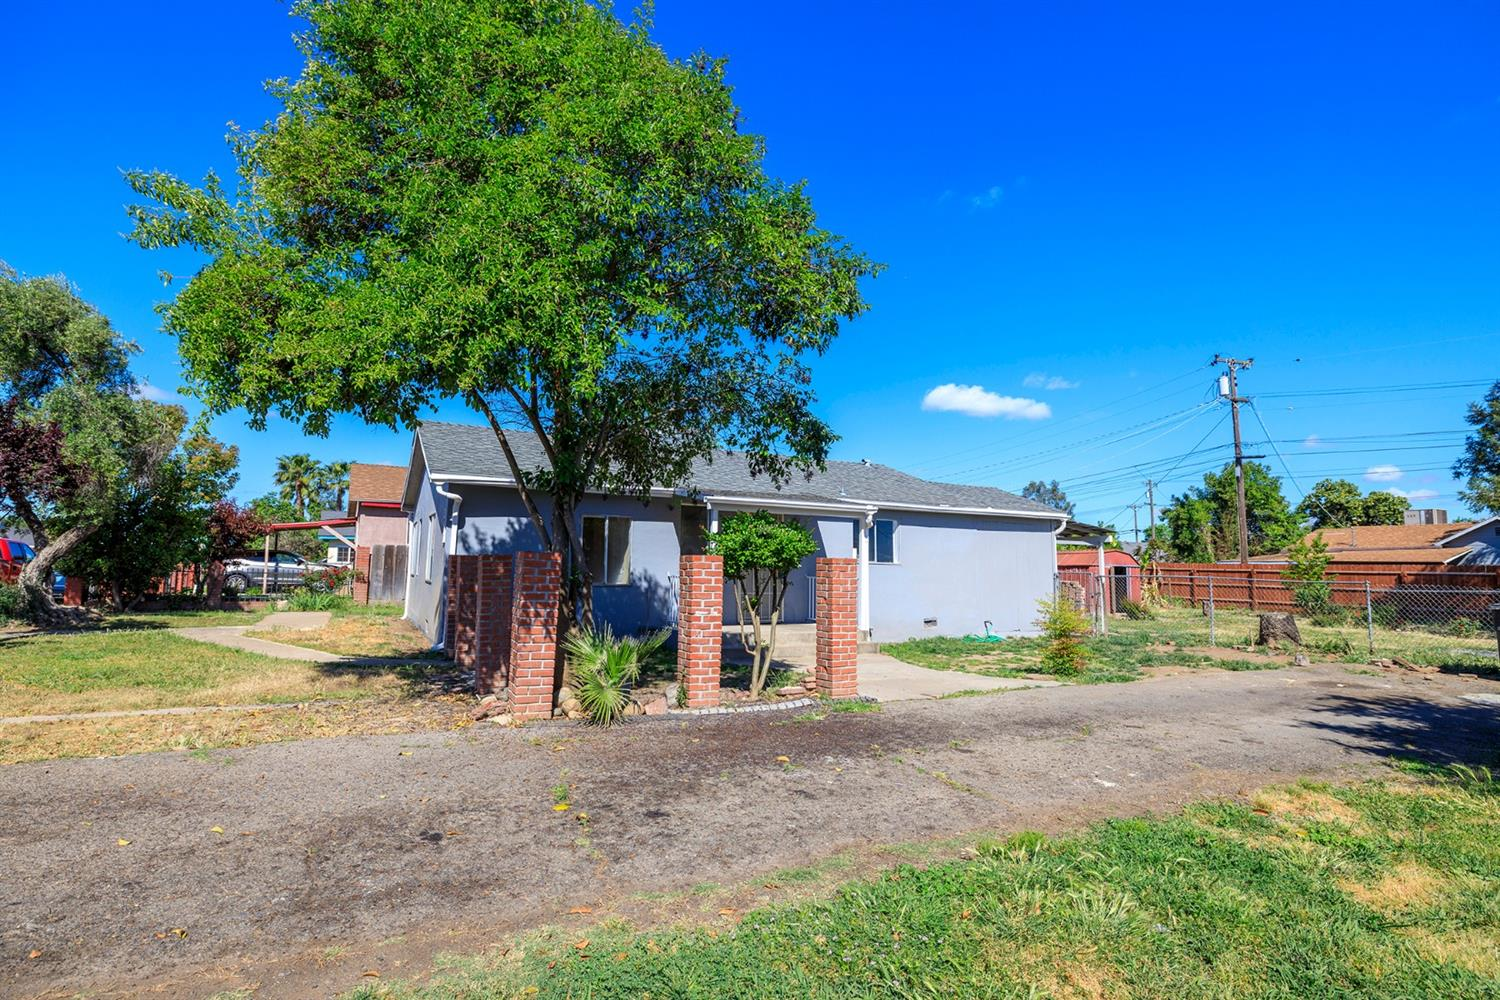 2937 Ross Ave, Riverbank CA 95367 - Photo 2